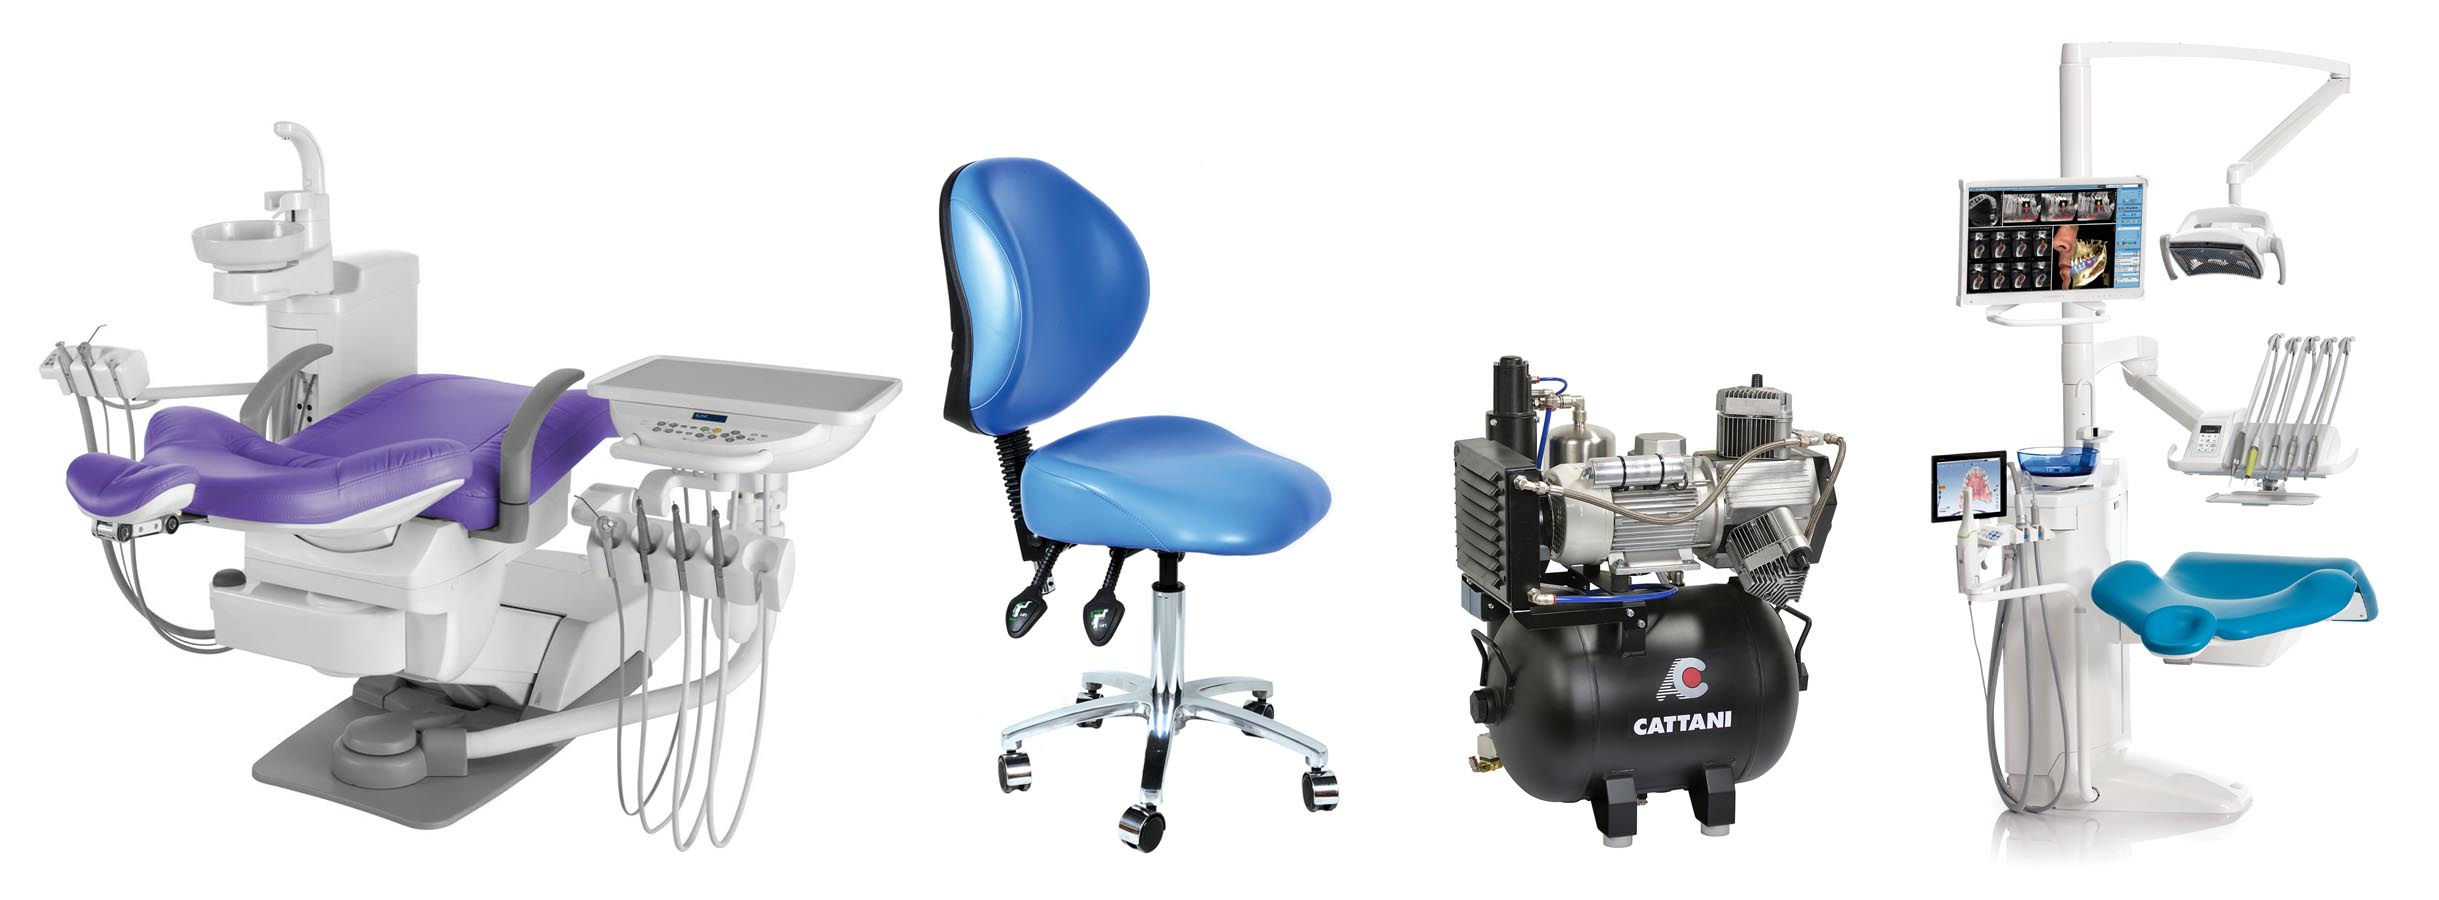 Dental Equipment Suppliers in the UK | SPS Dental